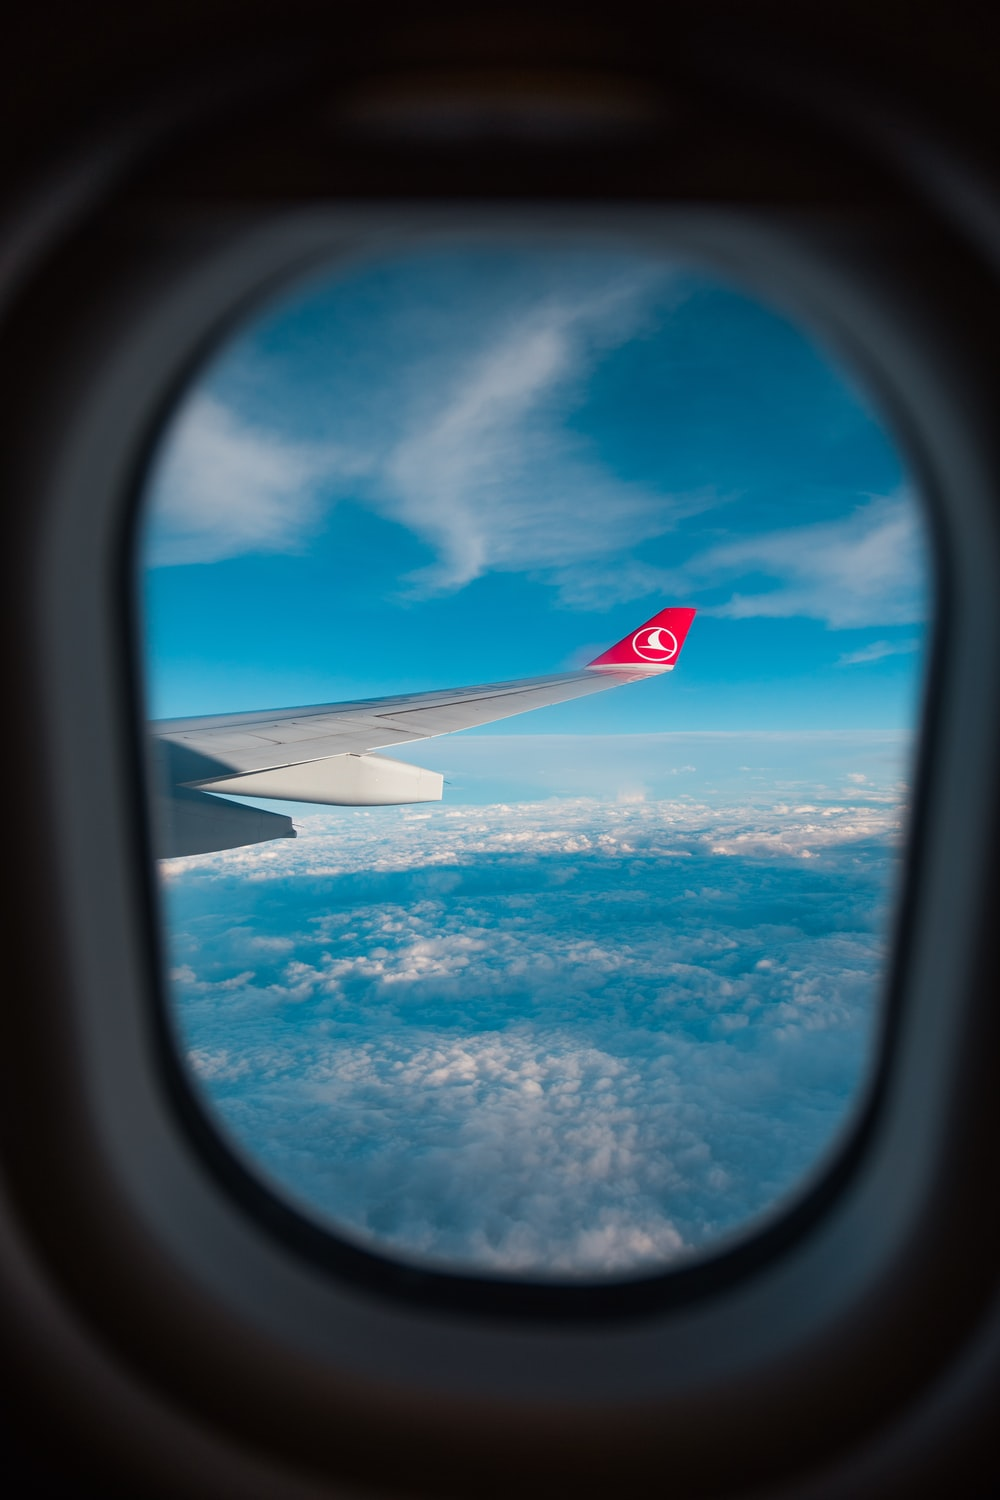 view of airplane's wing through window